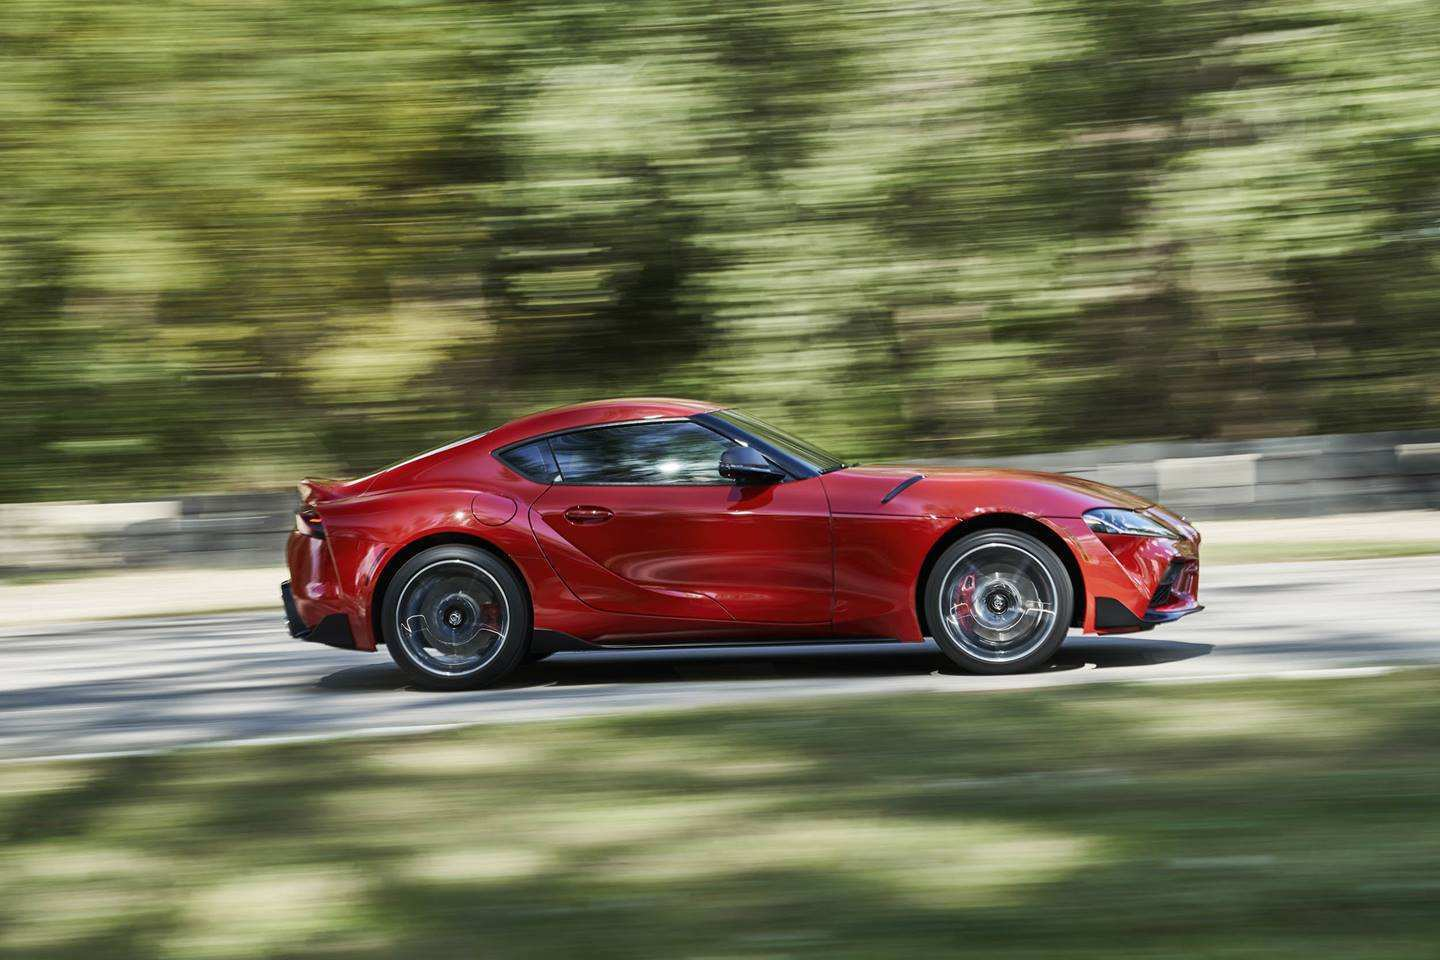 42 Concept of 2020 Toyota Supra Exterior Performance with 2020 Toyota Supra Exterior